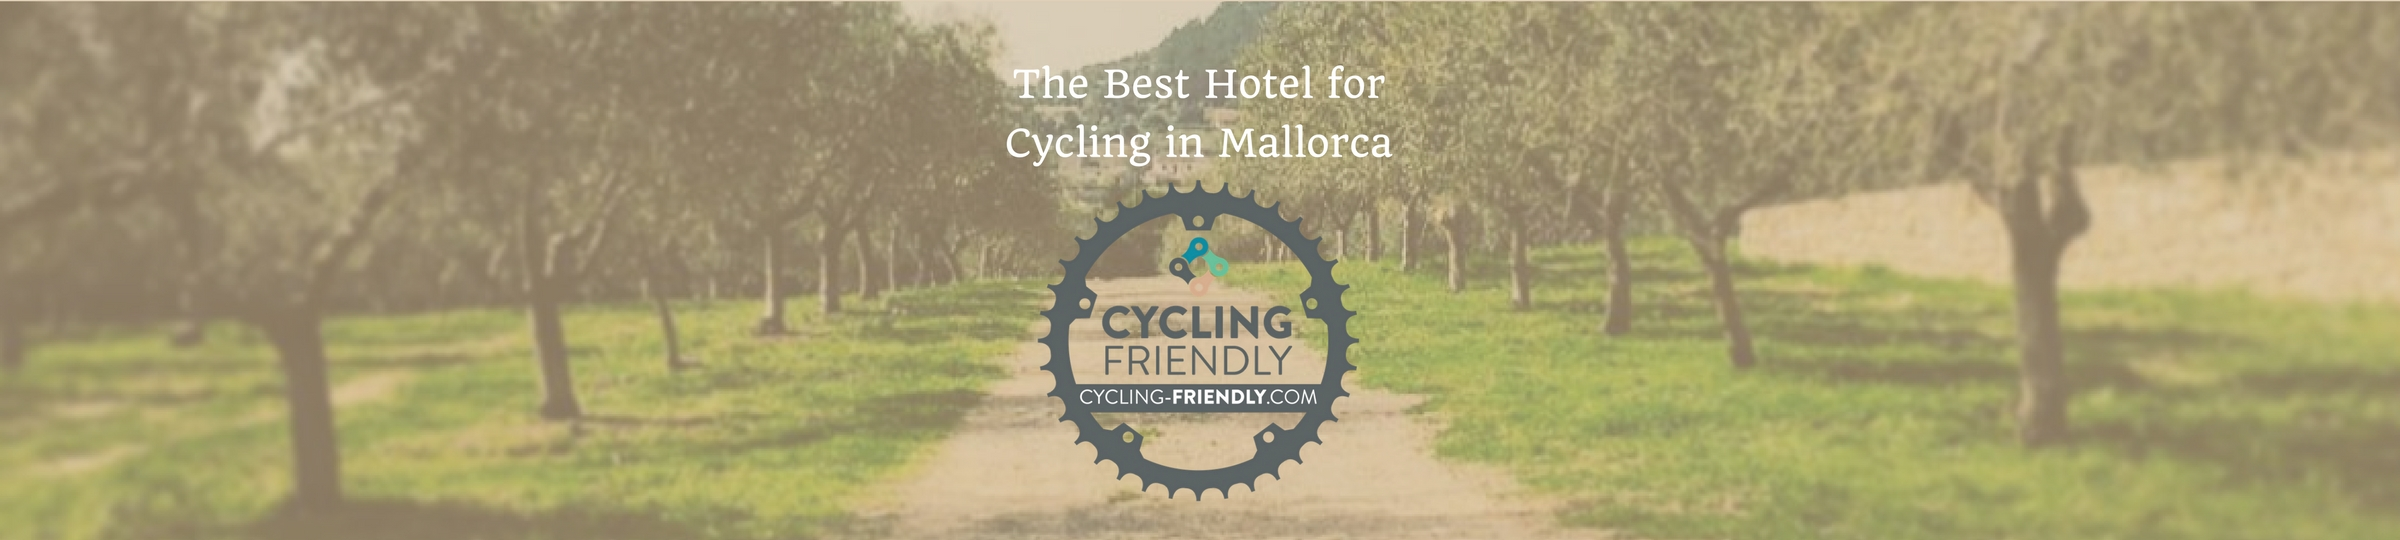 Best Hotel for Cycling in Mallorca